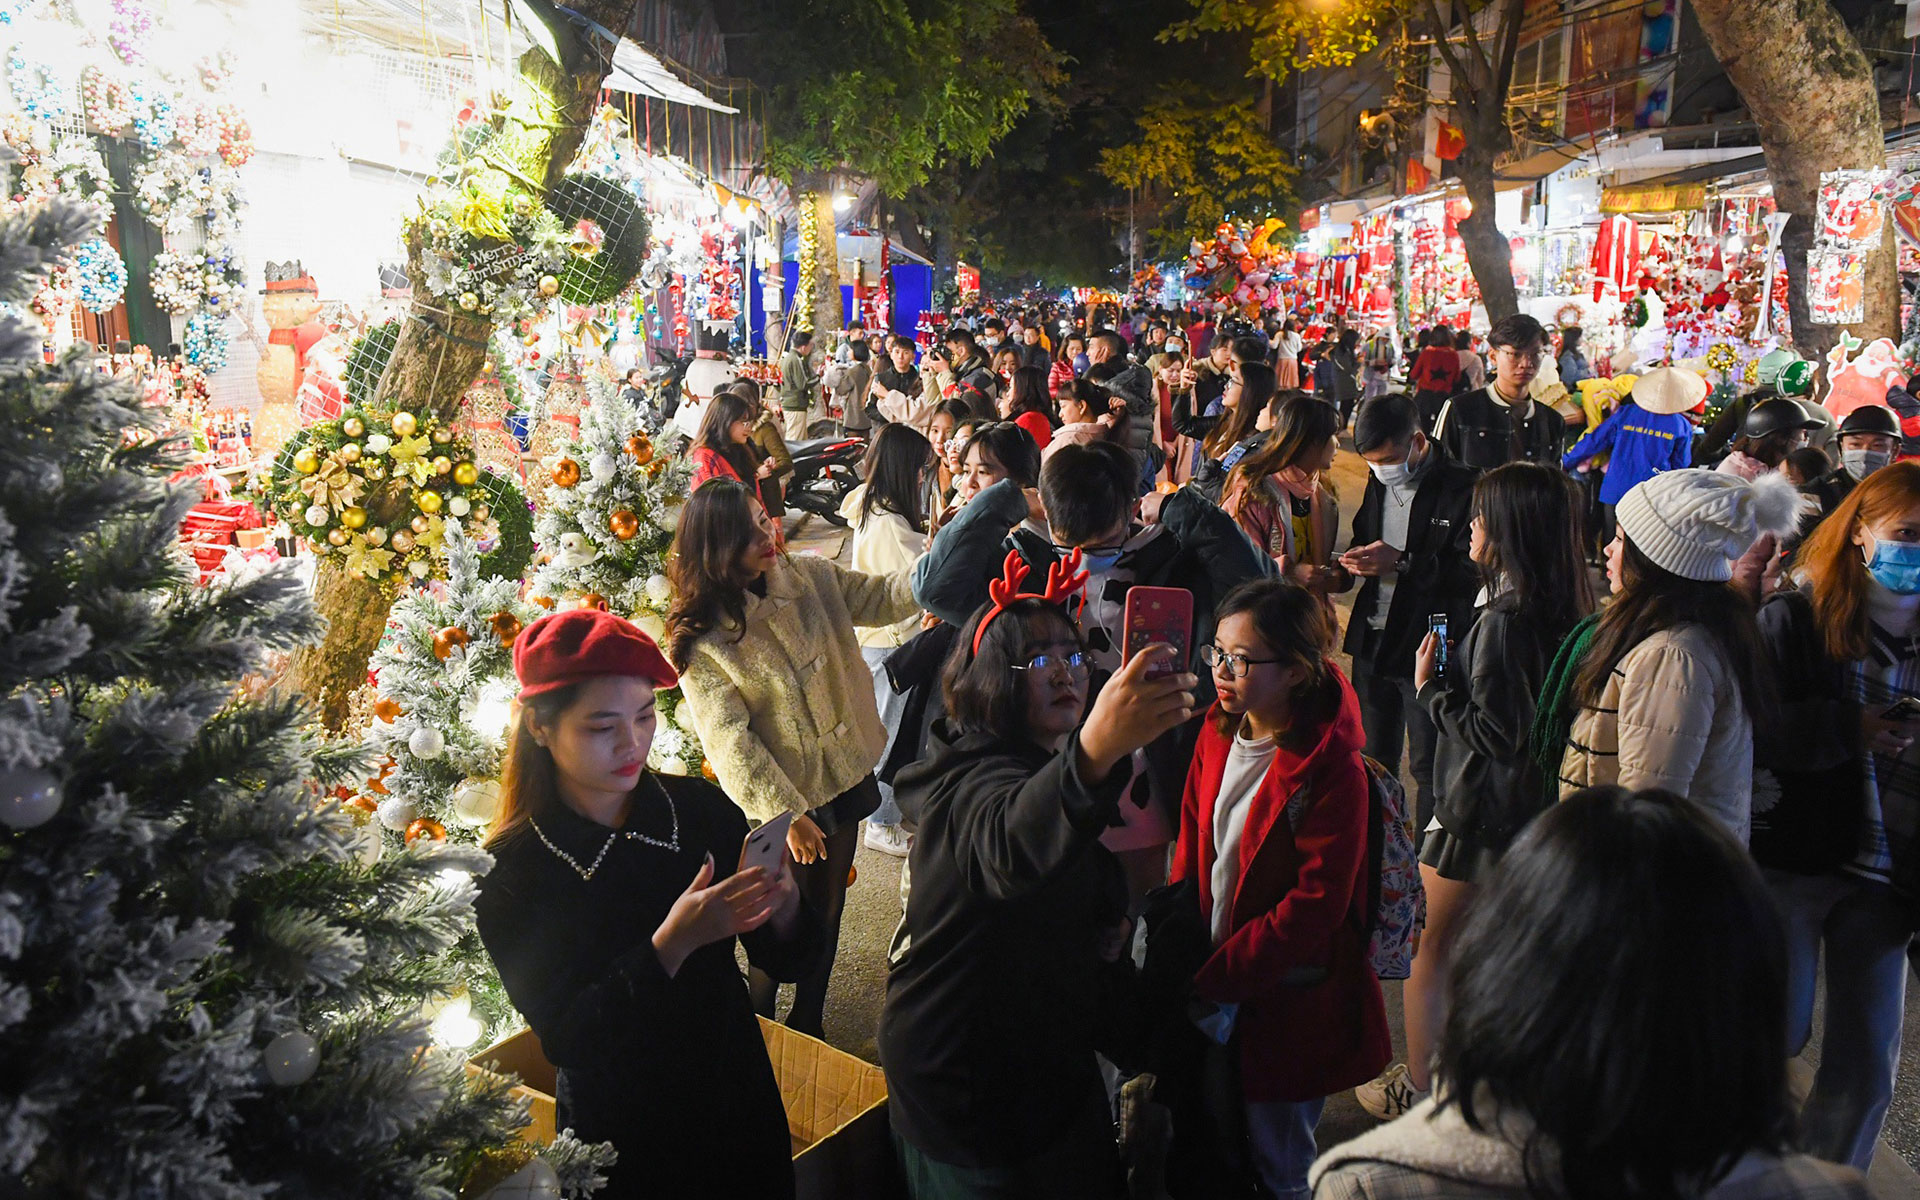 Celebrate your Christmas holiday in Hang Ma street, Hanoi